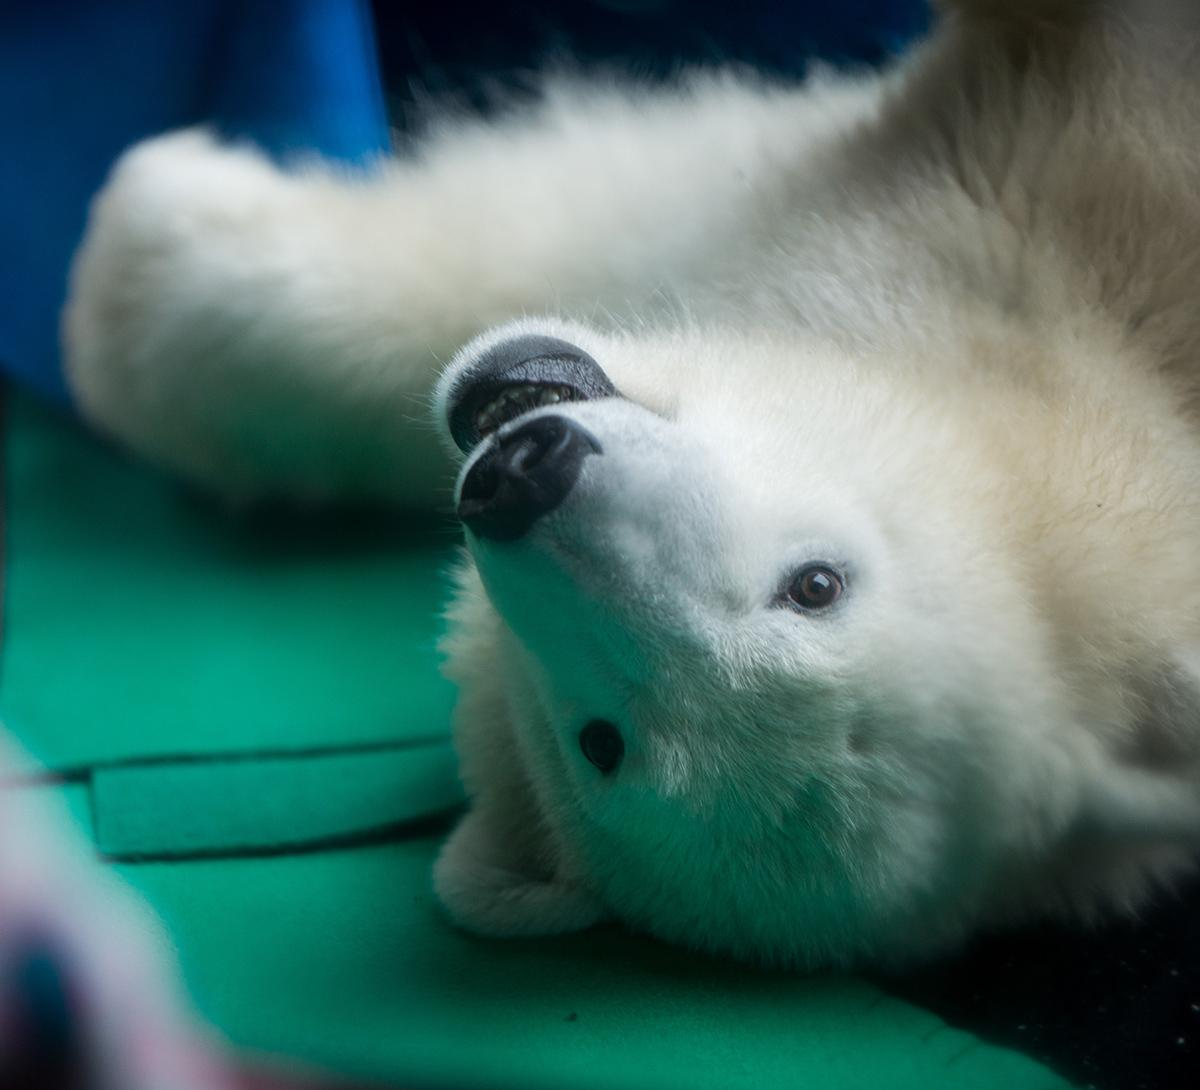 Nora the 1-year-old polar bear cub is making her first public appearances at the Oregon Zoo starting November 28, 2016 since her move to the Pacific Northwest from the Columbus Zoo earlier this year. (KATU photo by Tristan Fortsch)